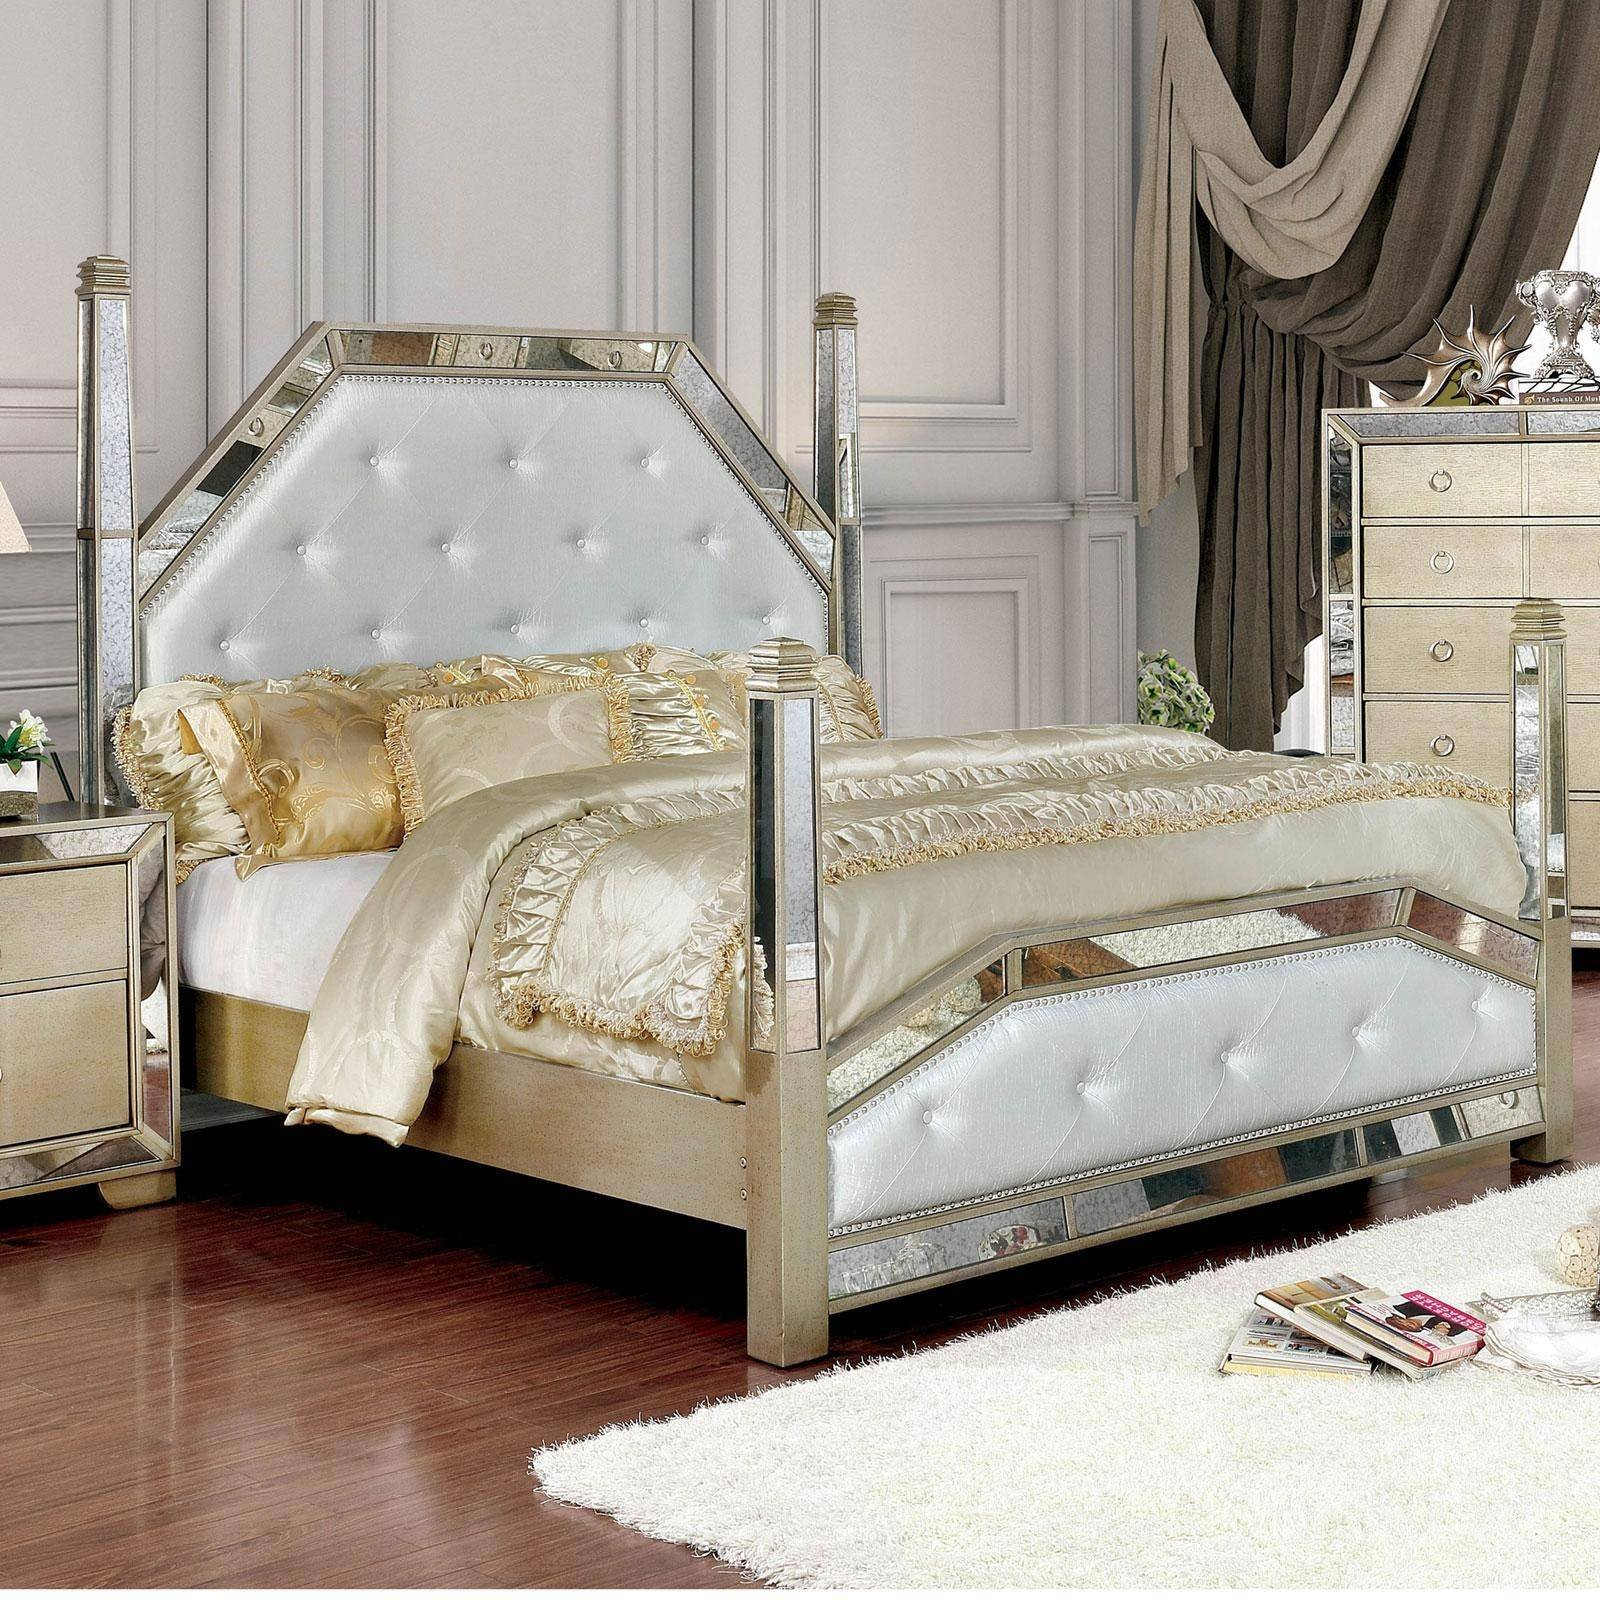 4 Poster Bedroom Set New Modern Wood King Poster Bed In Gray Loraine by Furniture Of America